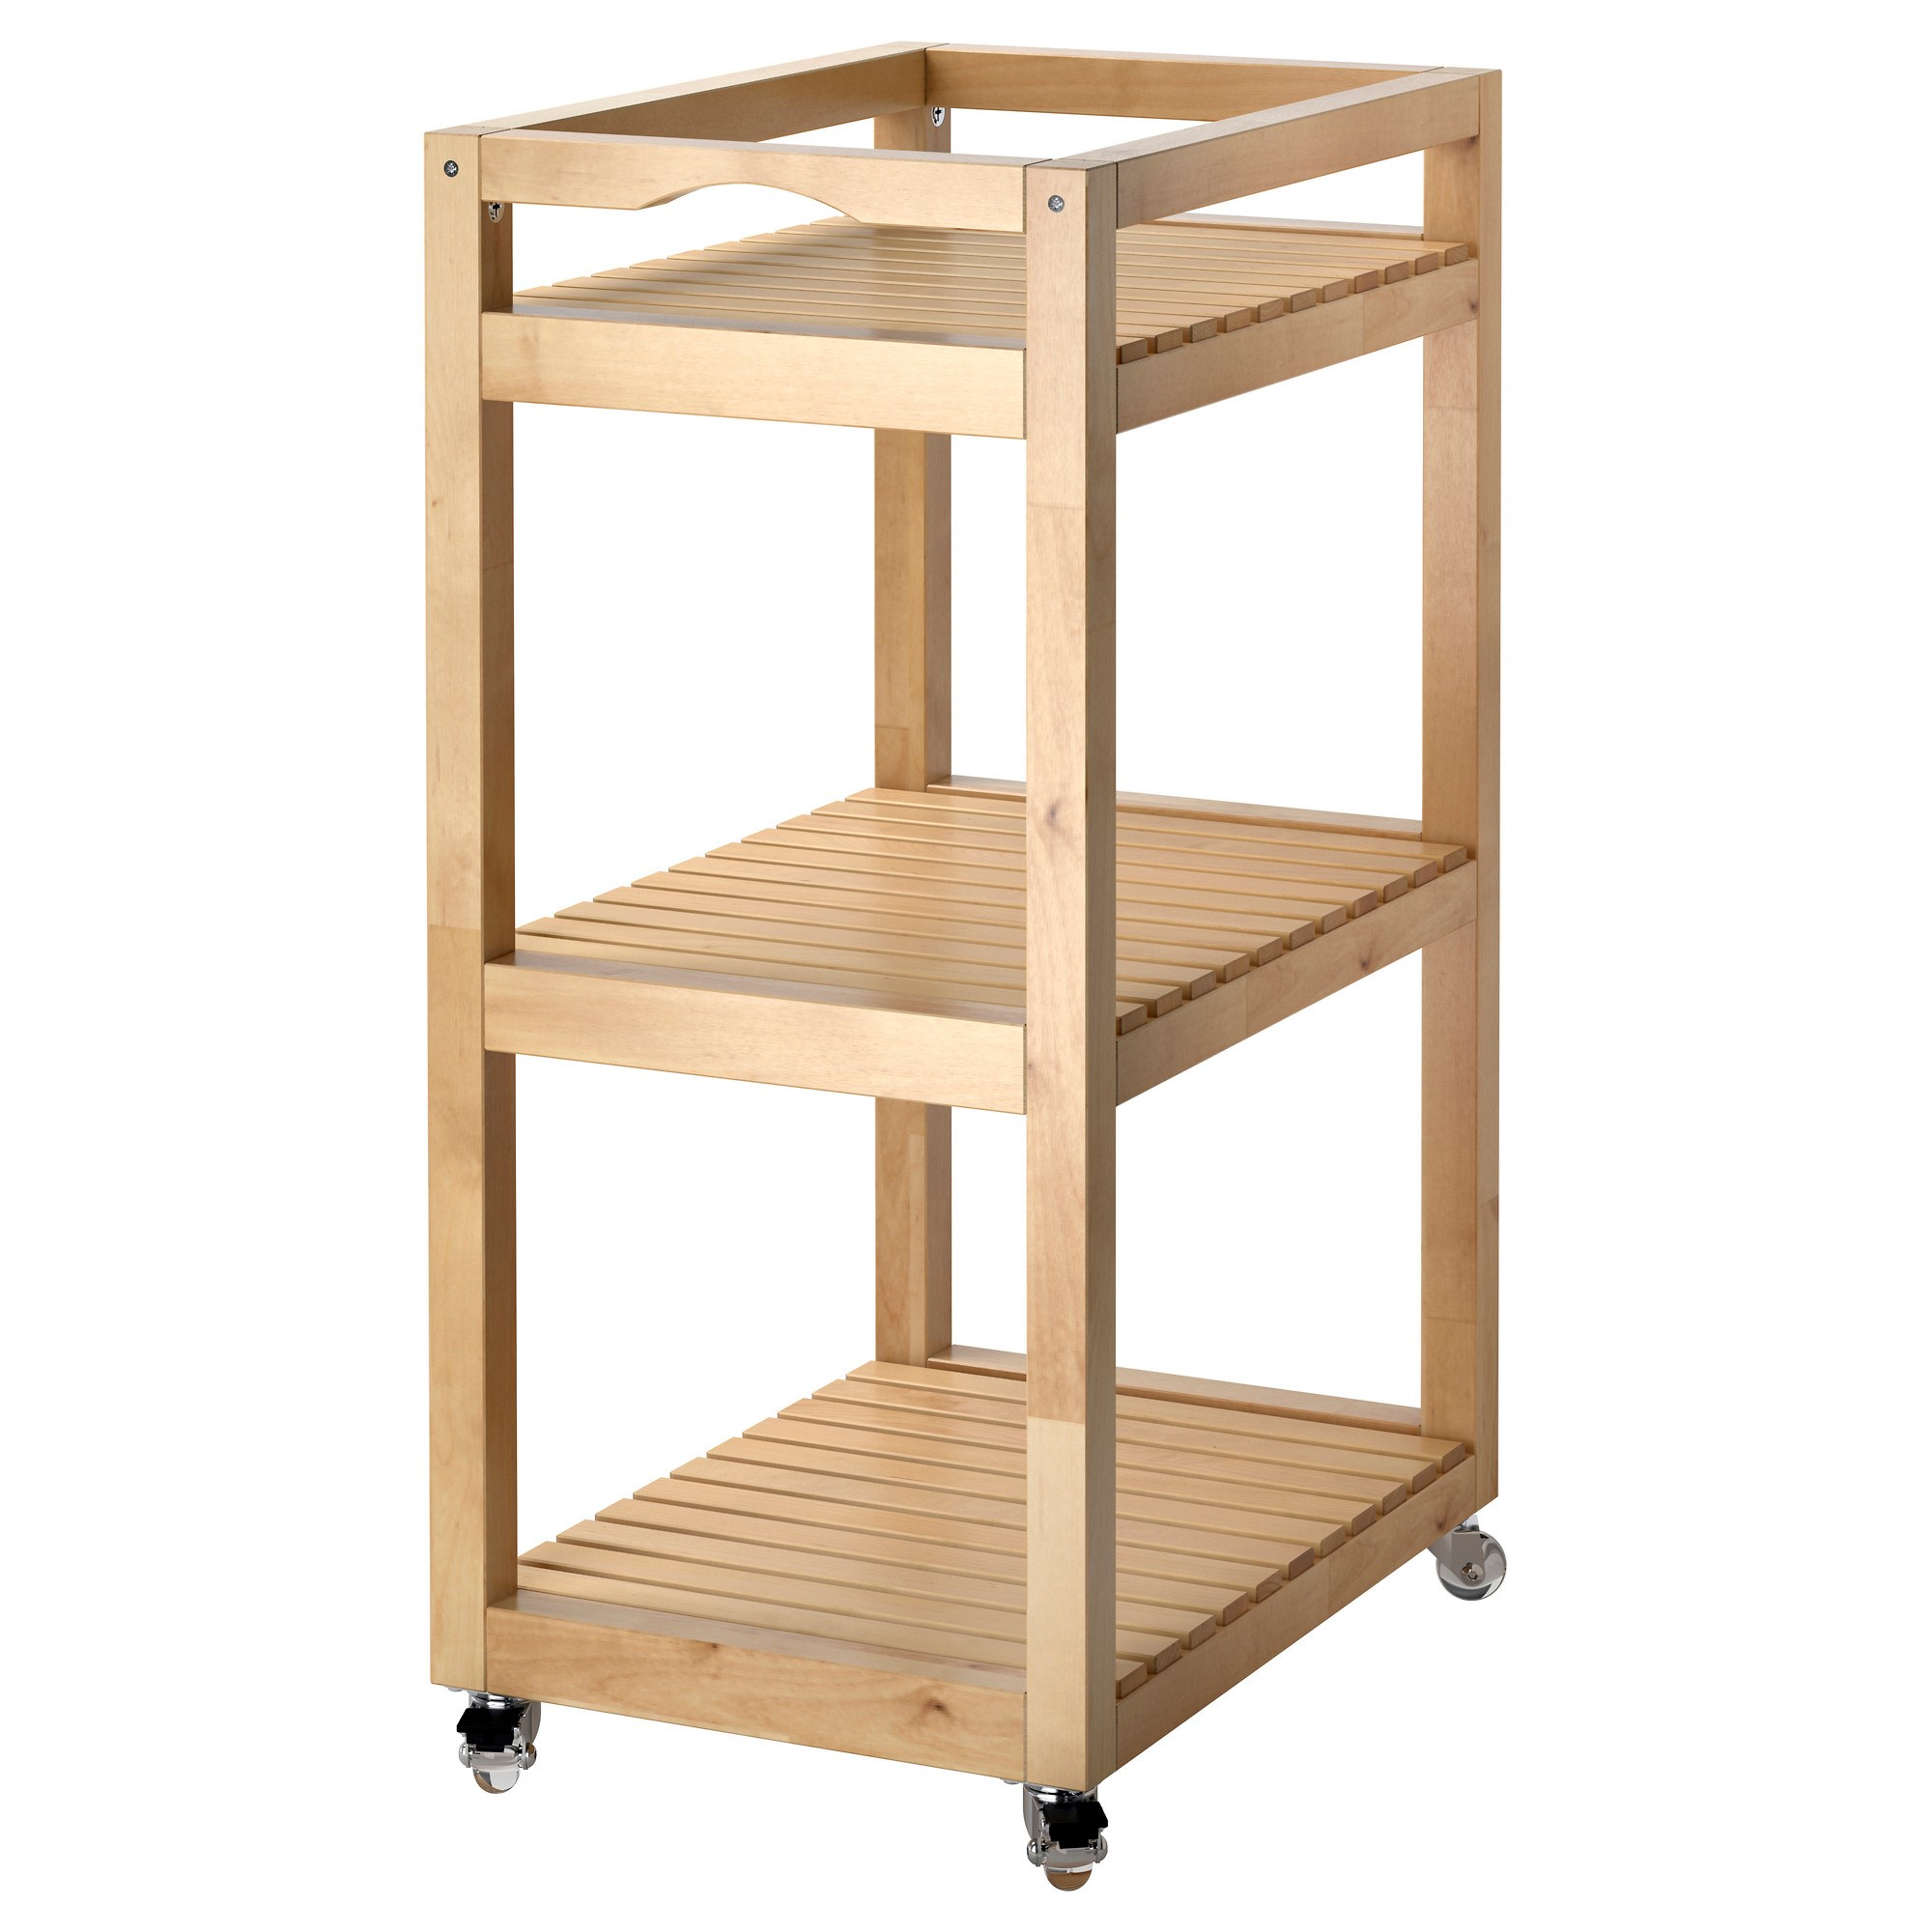 Gueridon Ikea Molger Shelving Unit Birch 33x76 Cm Ikea Ikea For Your Business